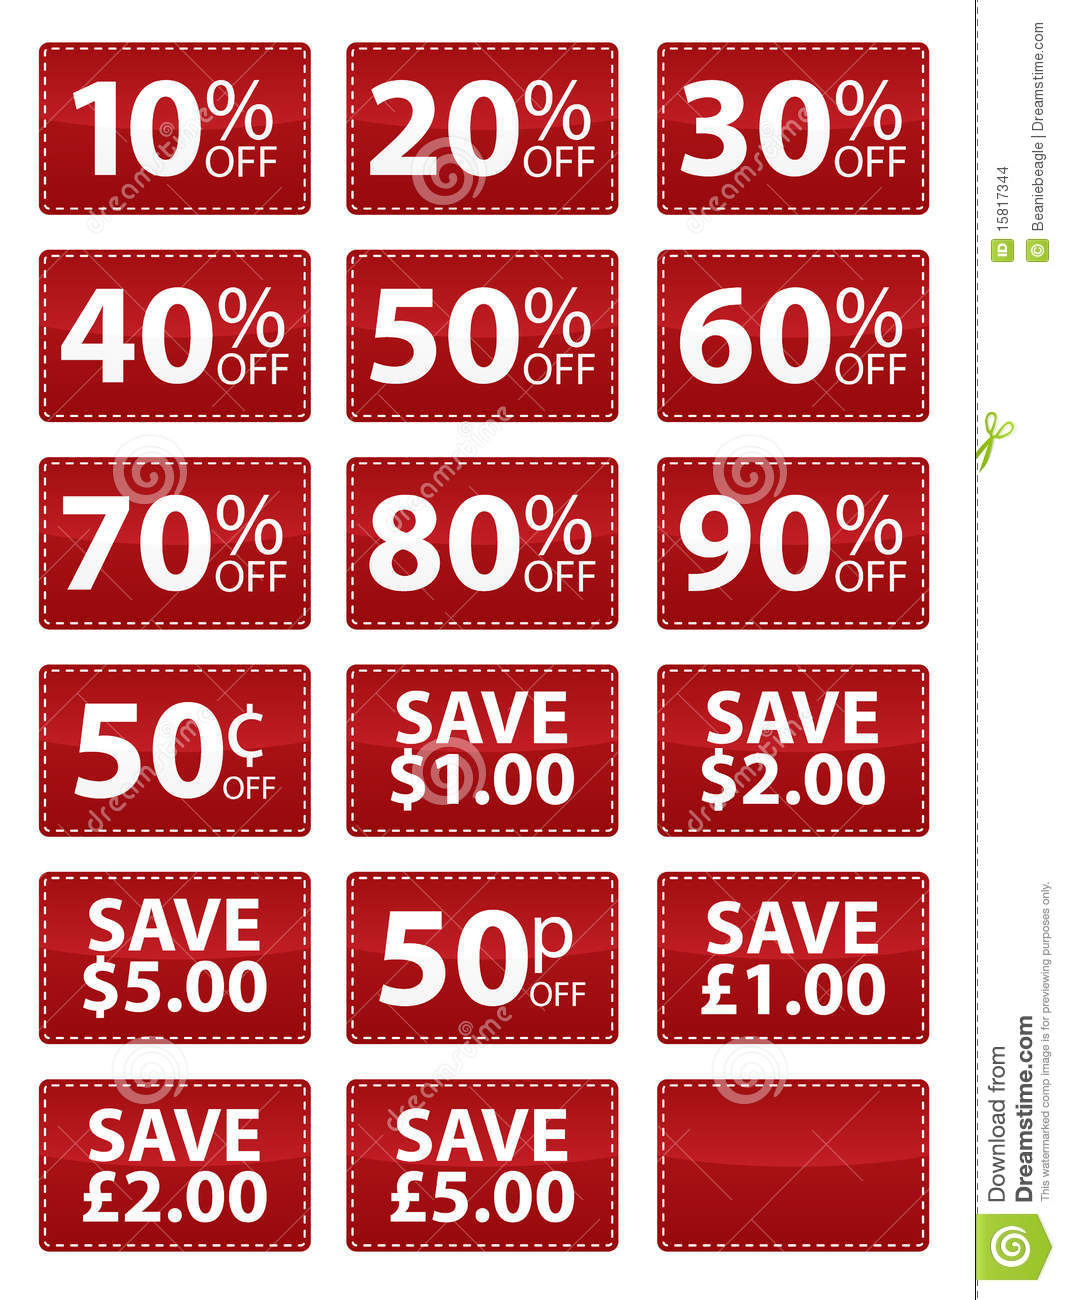 Coupons for sale